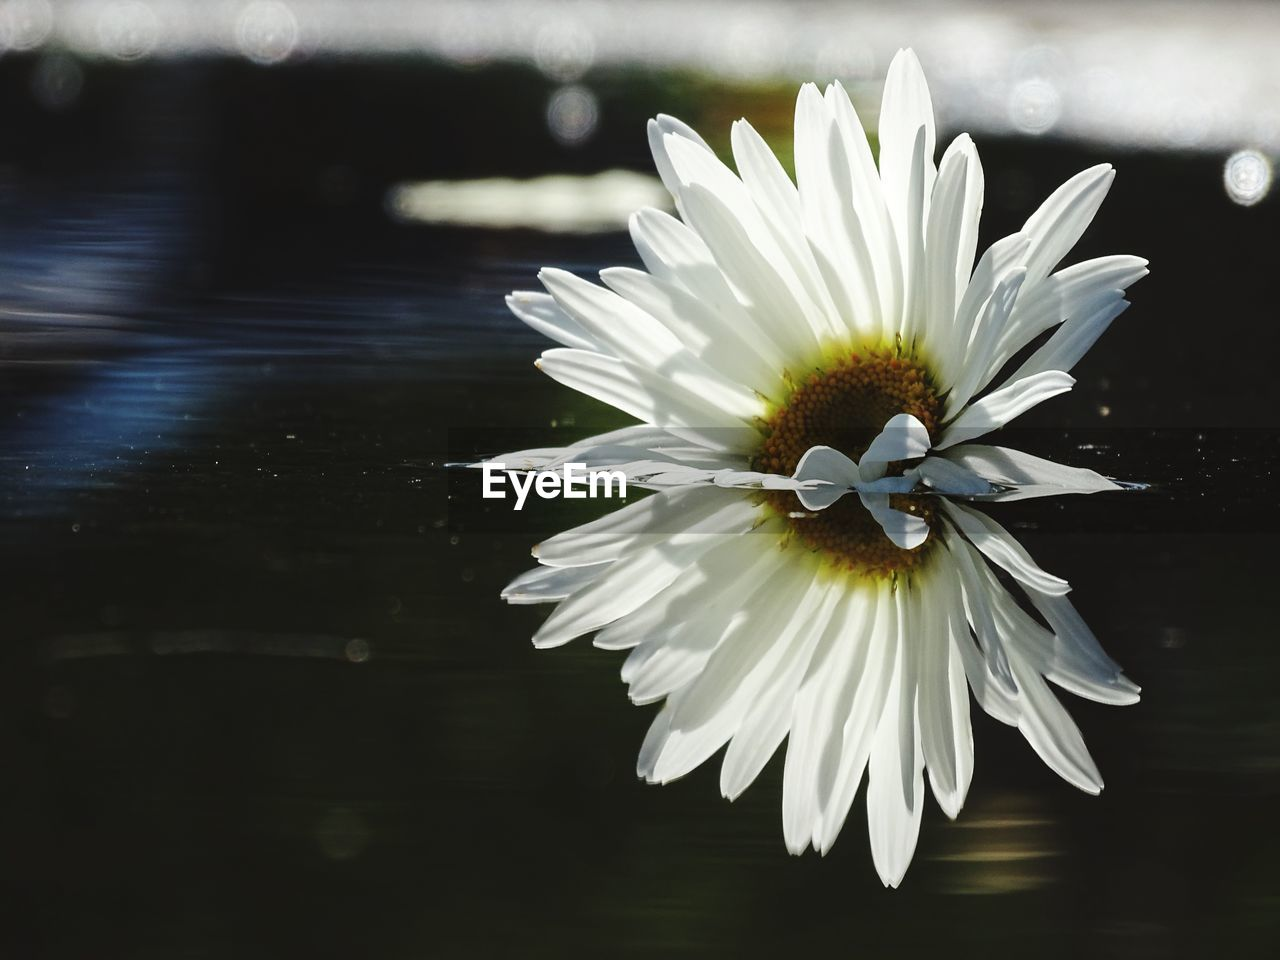 flower, petal, beauty in nature, flower head, white color, fragility, freshness, nature, no people, pollen, day, growth, water, water lily, blooming, close-up, plant, outdoors, lotus water lily, osteospermum, passion flower